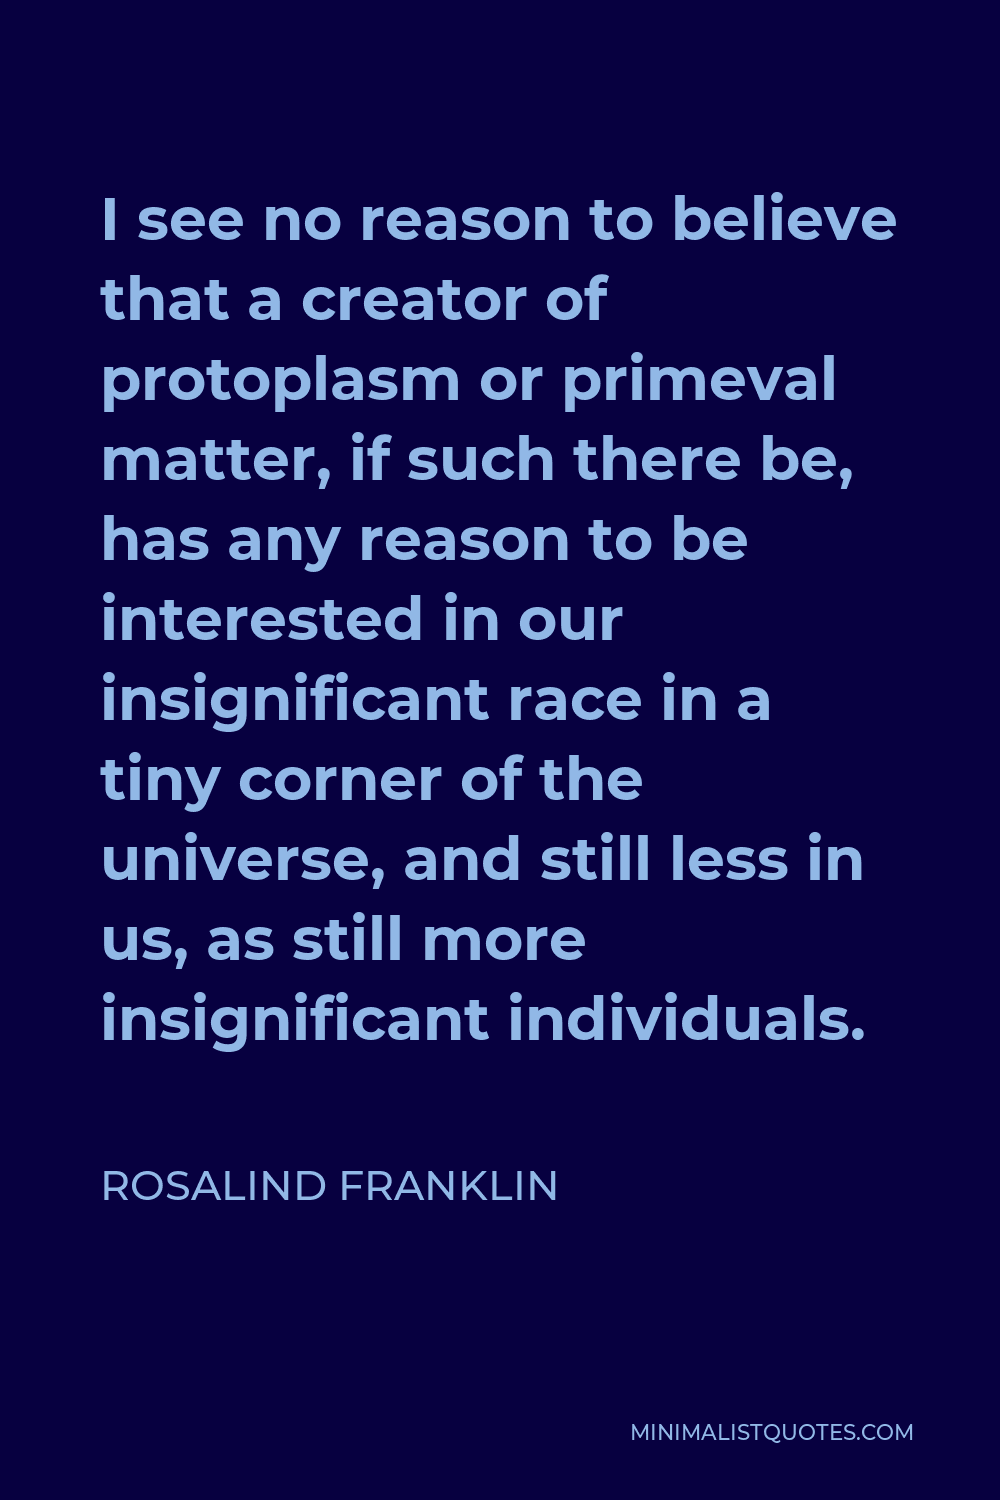 Rosalind Franklin Quote - I see no reason to believe that a creator of protoplasm or primeval matter, if such there be, has any reason to be interested in our insignificant race in a tiny corner of the universe, and still less in us, as still more insignificant individuals.